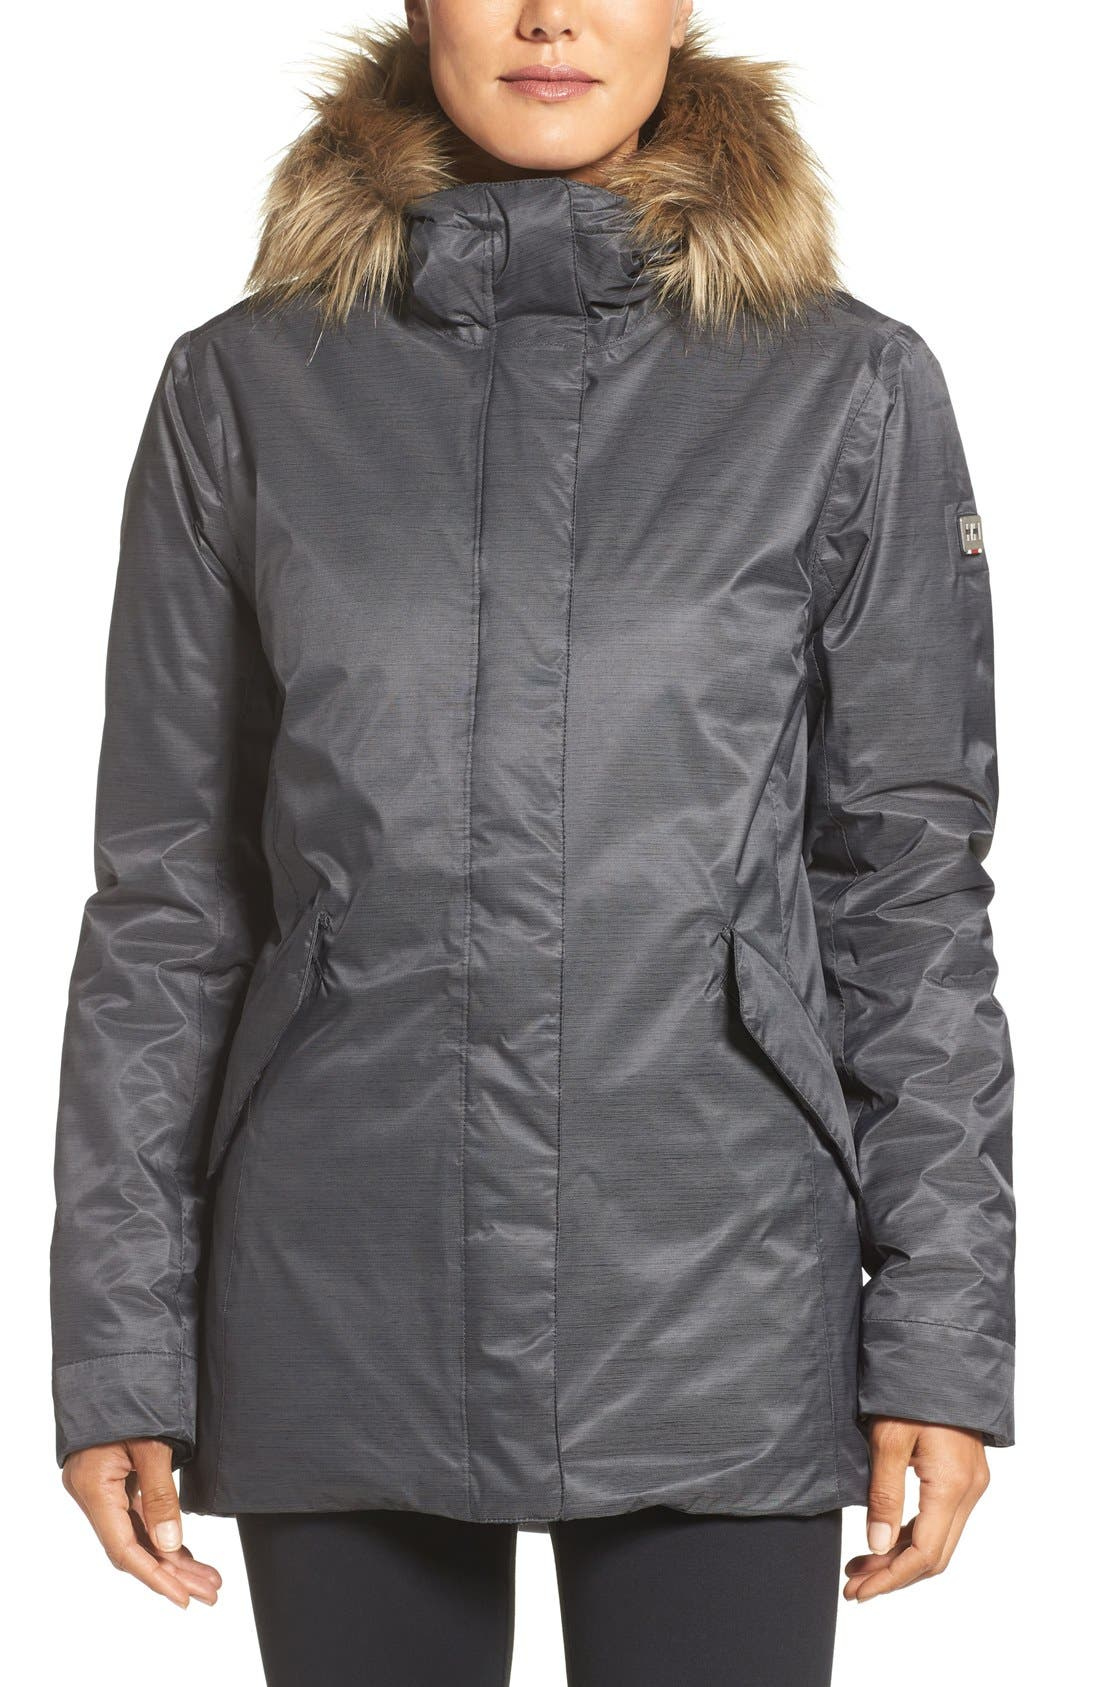 Alternate Image 1 Selected - Helly Hansen Hilton Waterproof Parka with Faux Fur Trim